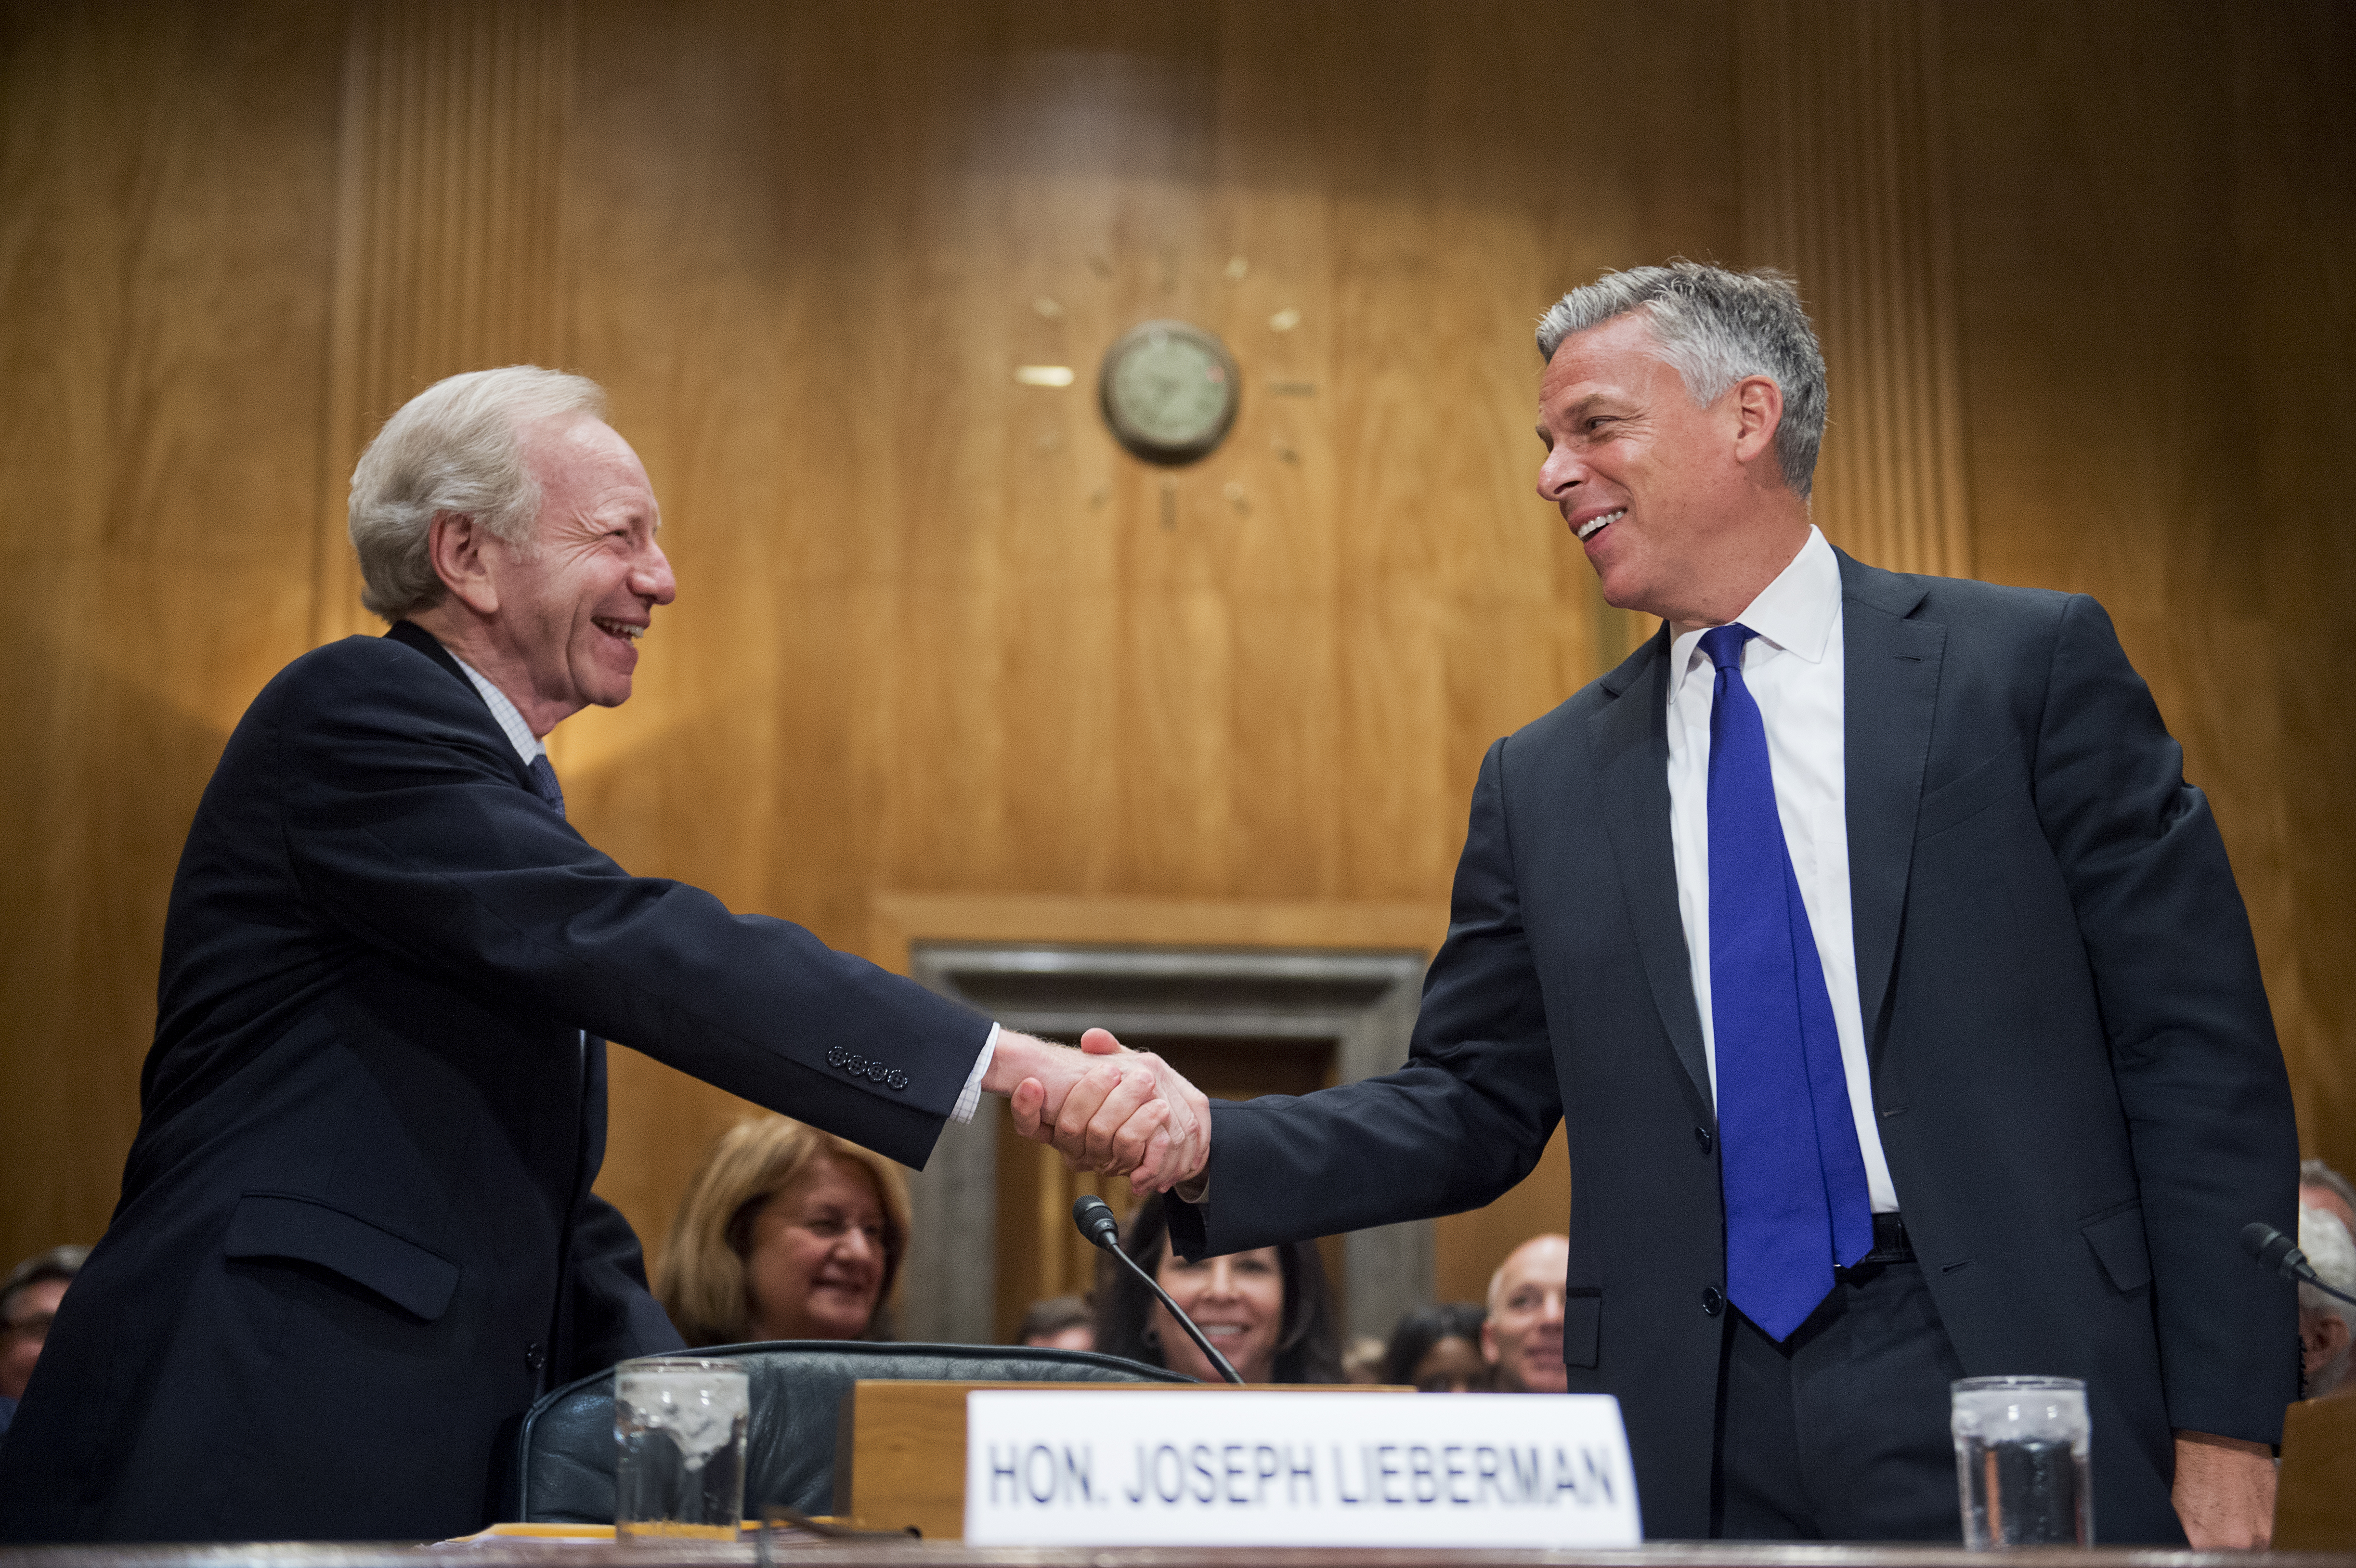 Former Sen. Joseph Lieberman, I-Conn., left, and former Gov. Jon Huntsman Jr., R-Utah, co-chairs of No Labels, arrive for a Senate Homeland Security and Governmental Affairs Committee hearing on June 17, 2015.